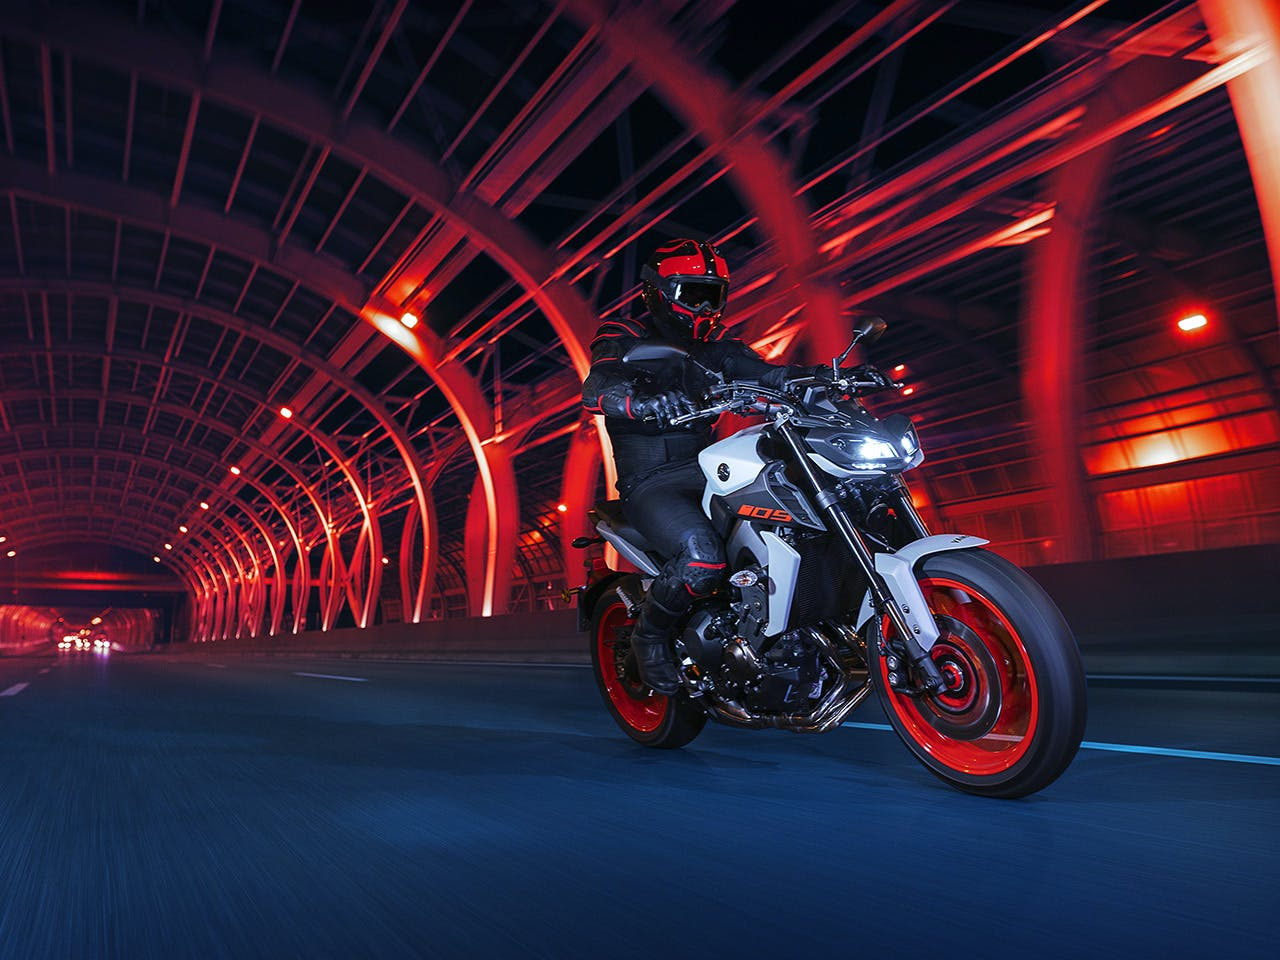 YAMAHA MT-09 on the road